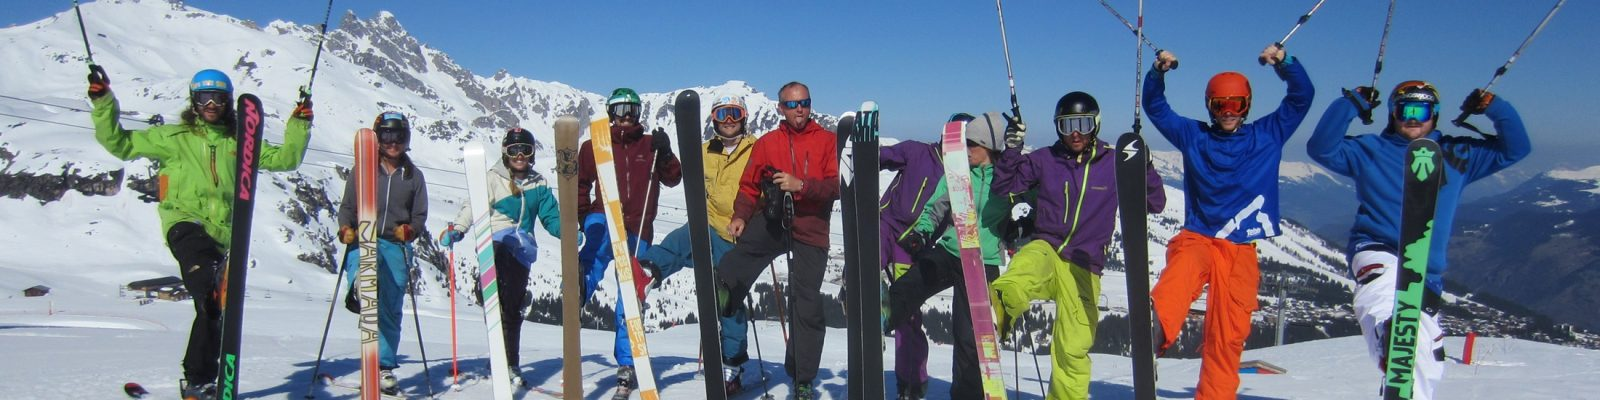 Group ski holiday